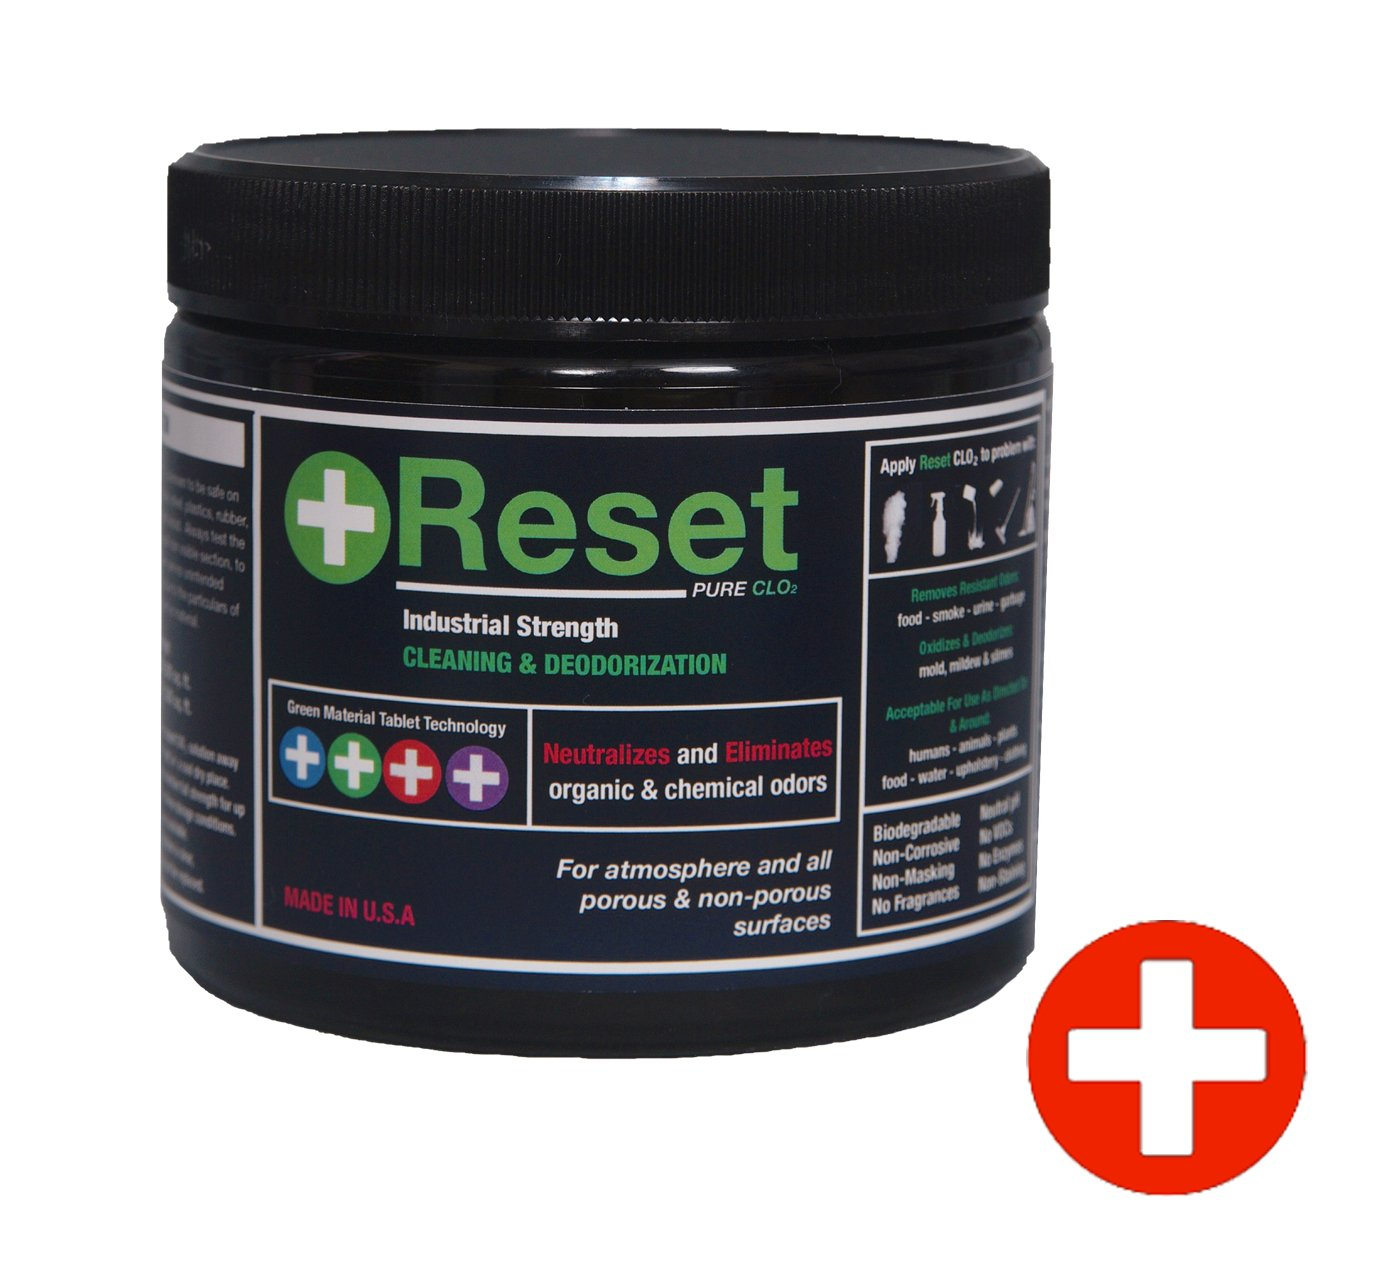 Reset Pure Chlorine Dioxide LIQUID: Safely Remove Organic & Chemical Odor From Any Surface or Tank & Line System. 5 Red Tablets. Commercial Strength (H-Level)